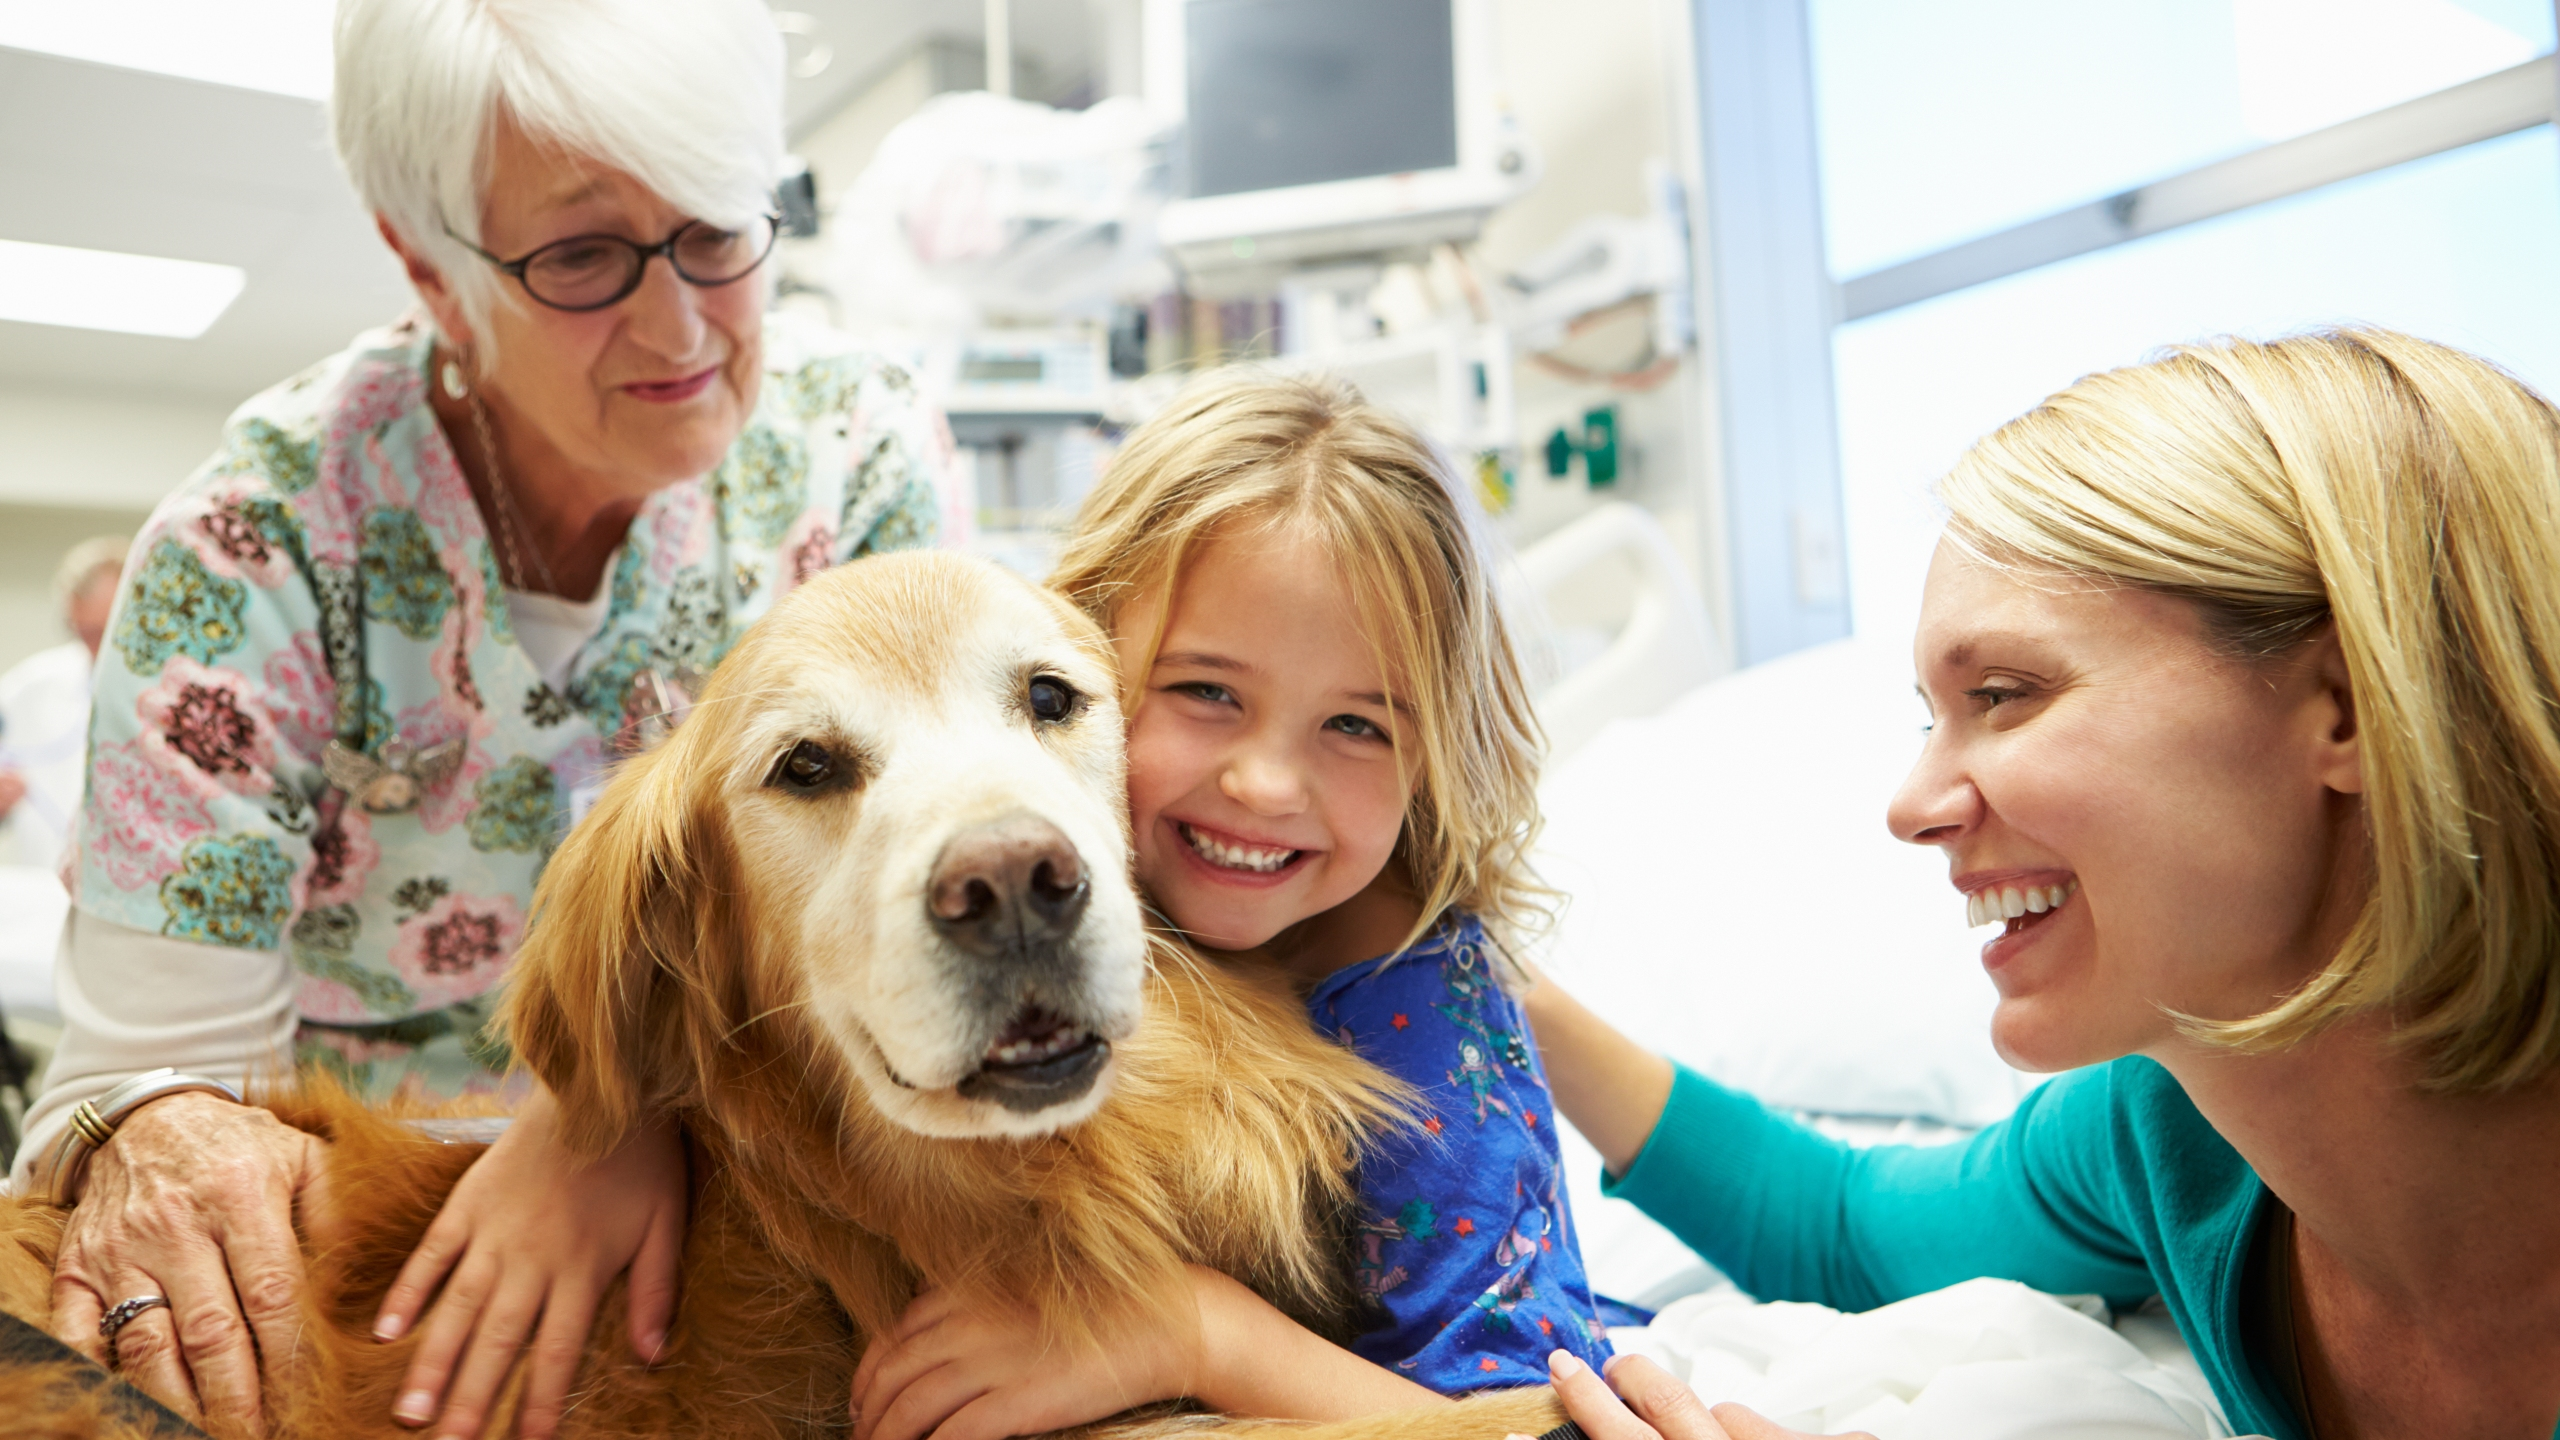 Young girl being visited in hospital by therapy dog and family. (Credit: iStock/Getty Images Plus)